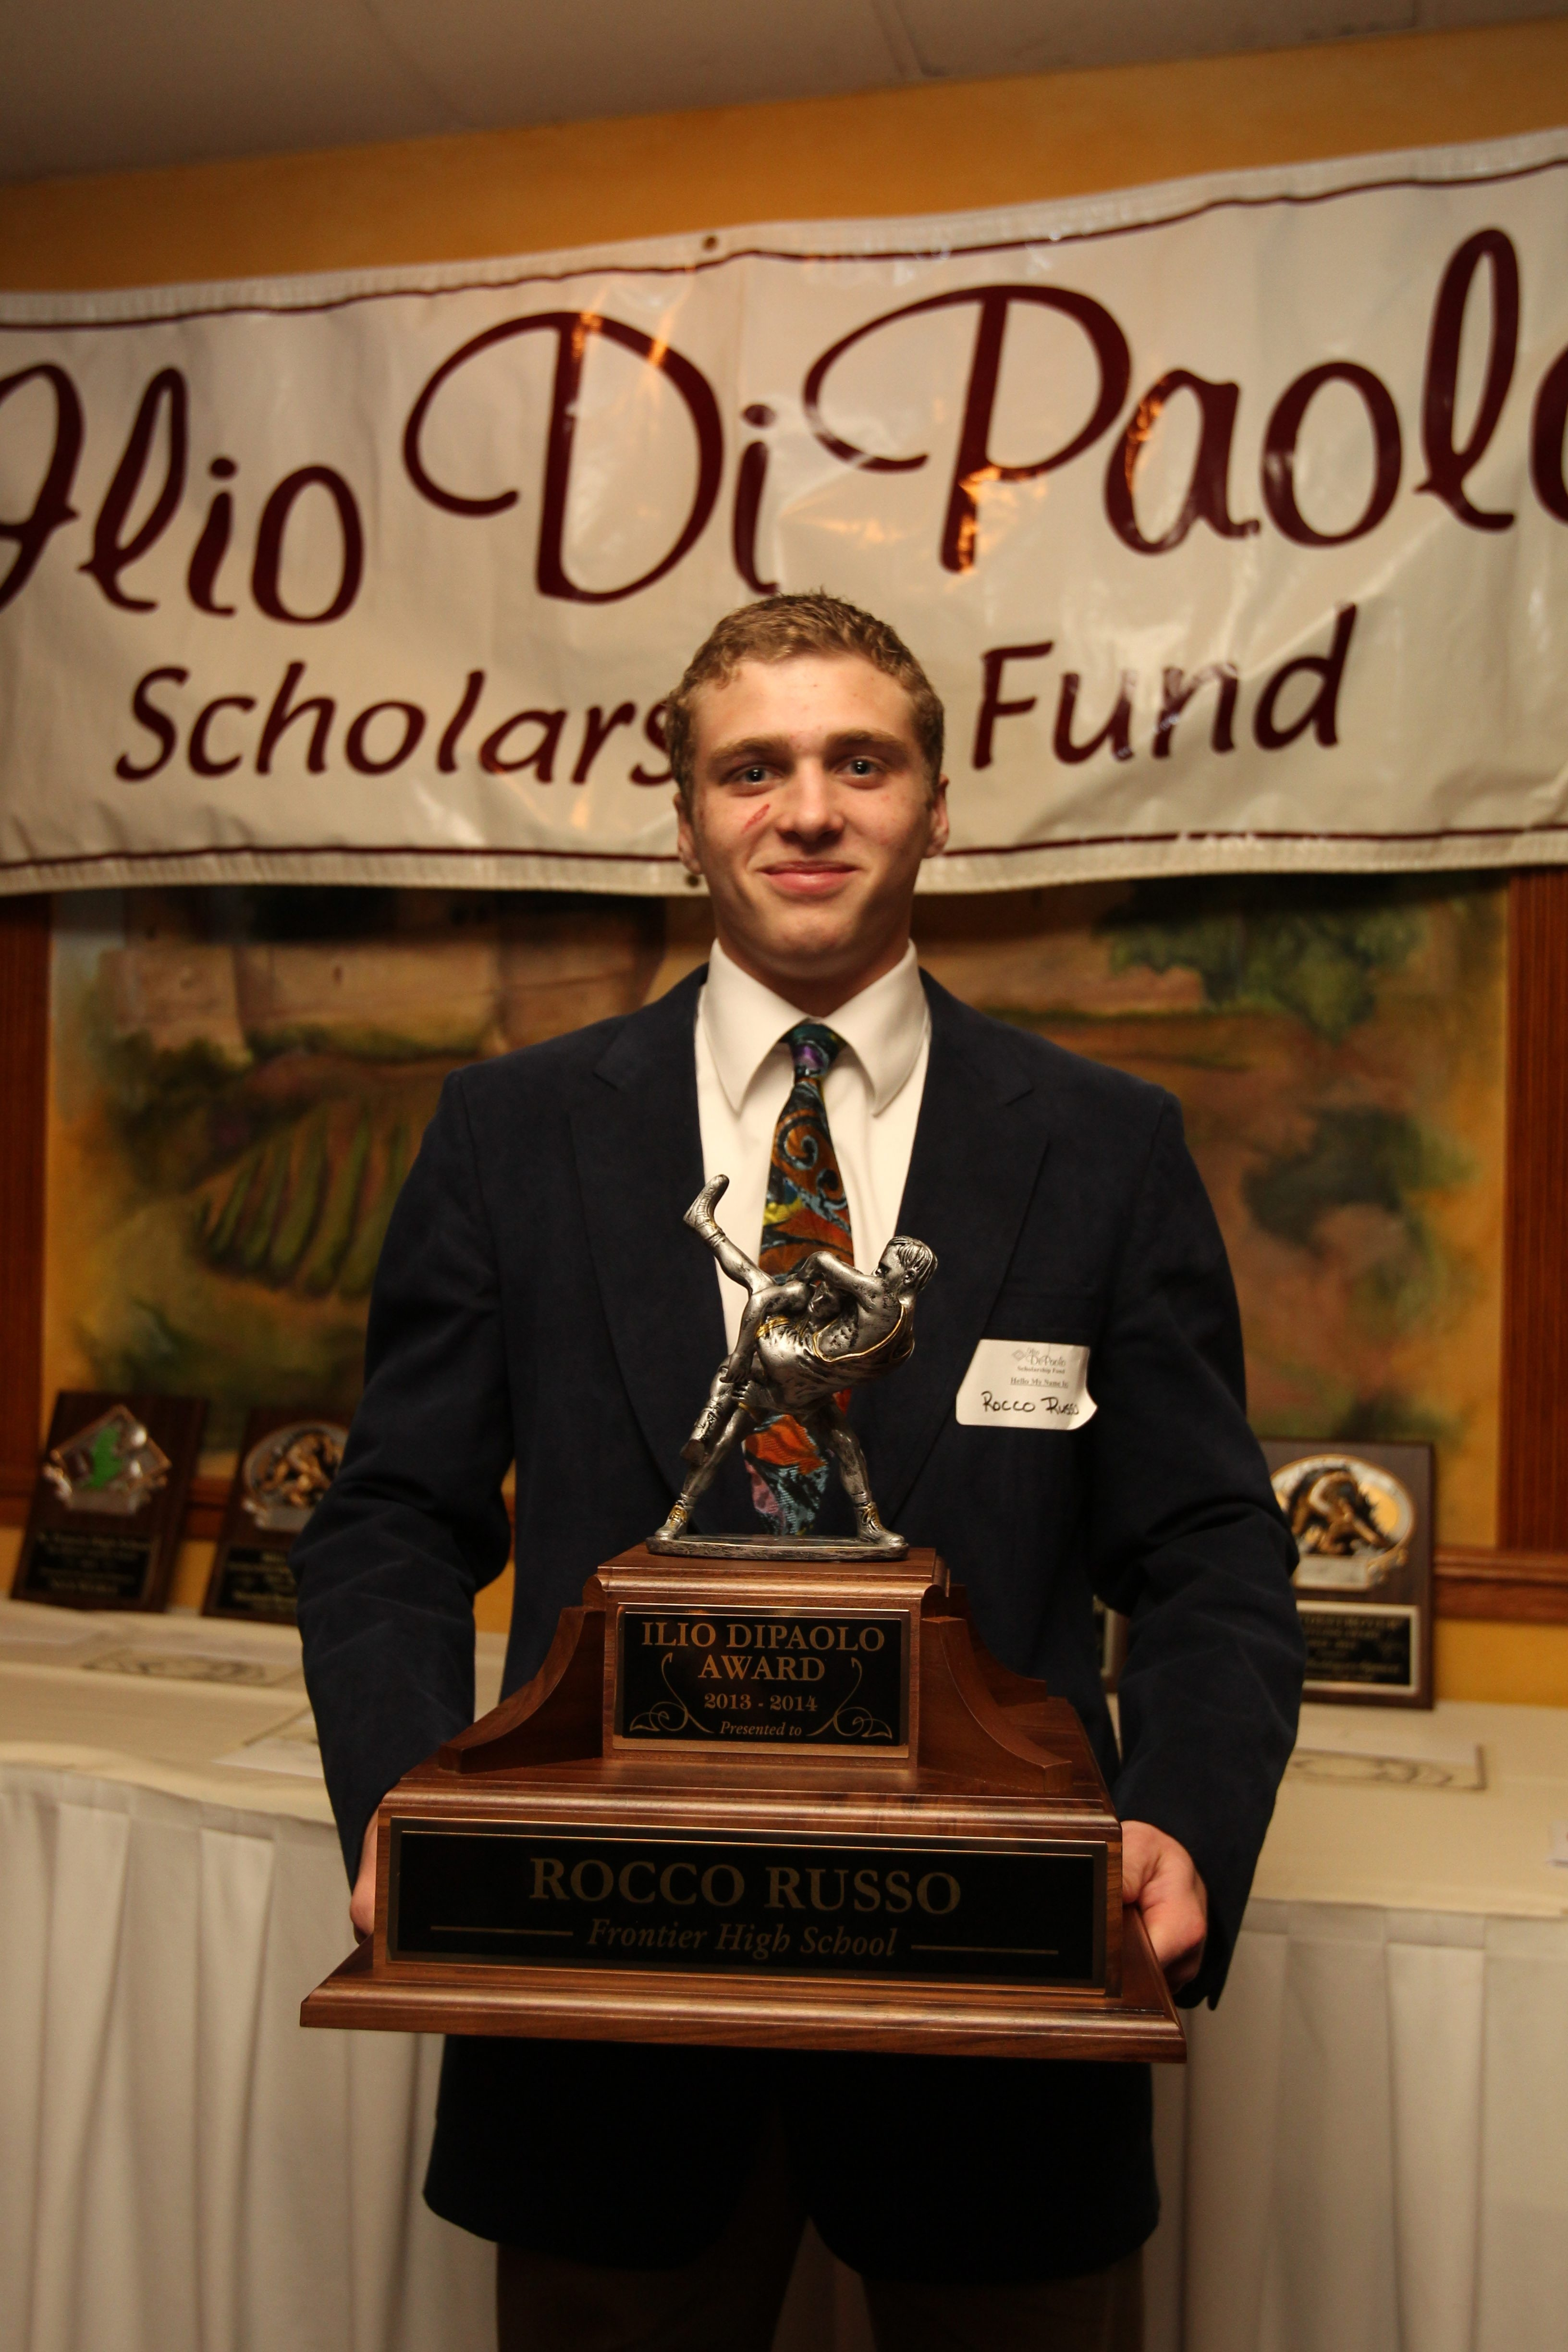 Rocco Russo from Frontier High School won the Ilio DiPaolo Award at a banquet on Monday night.